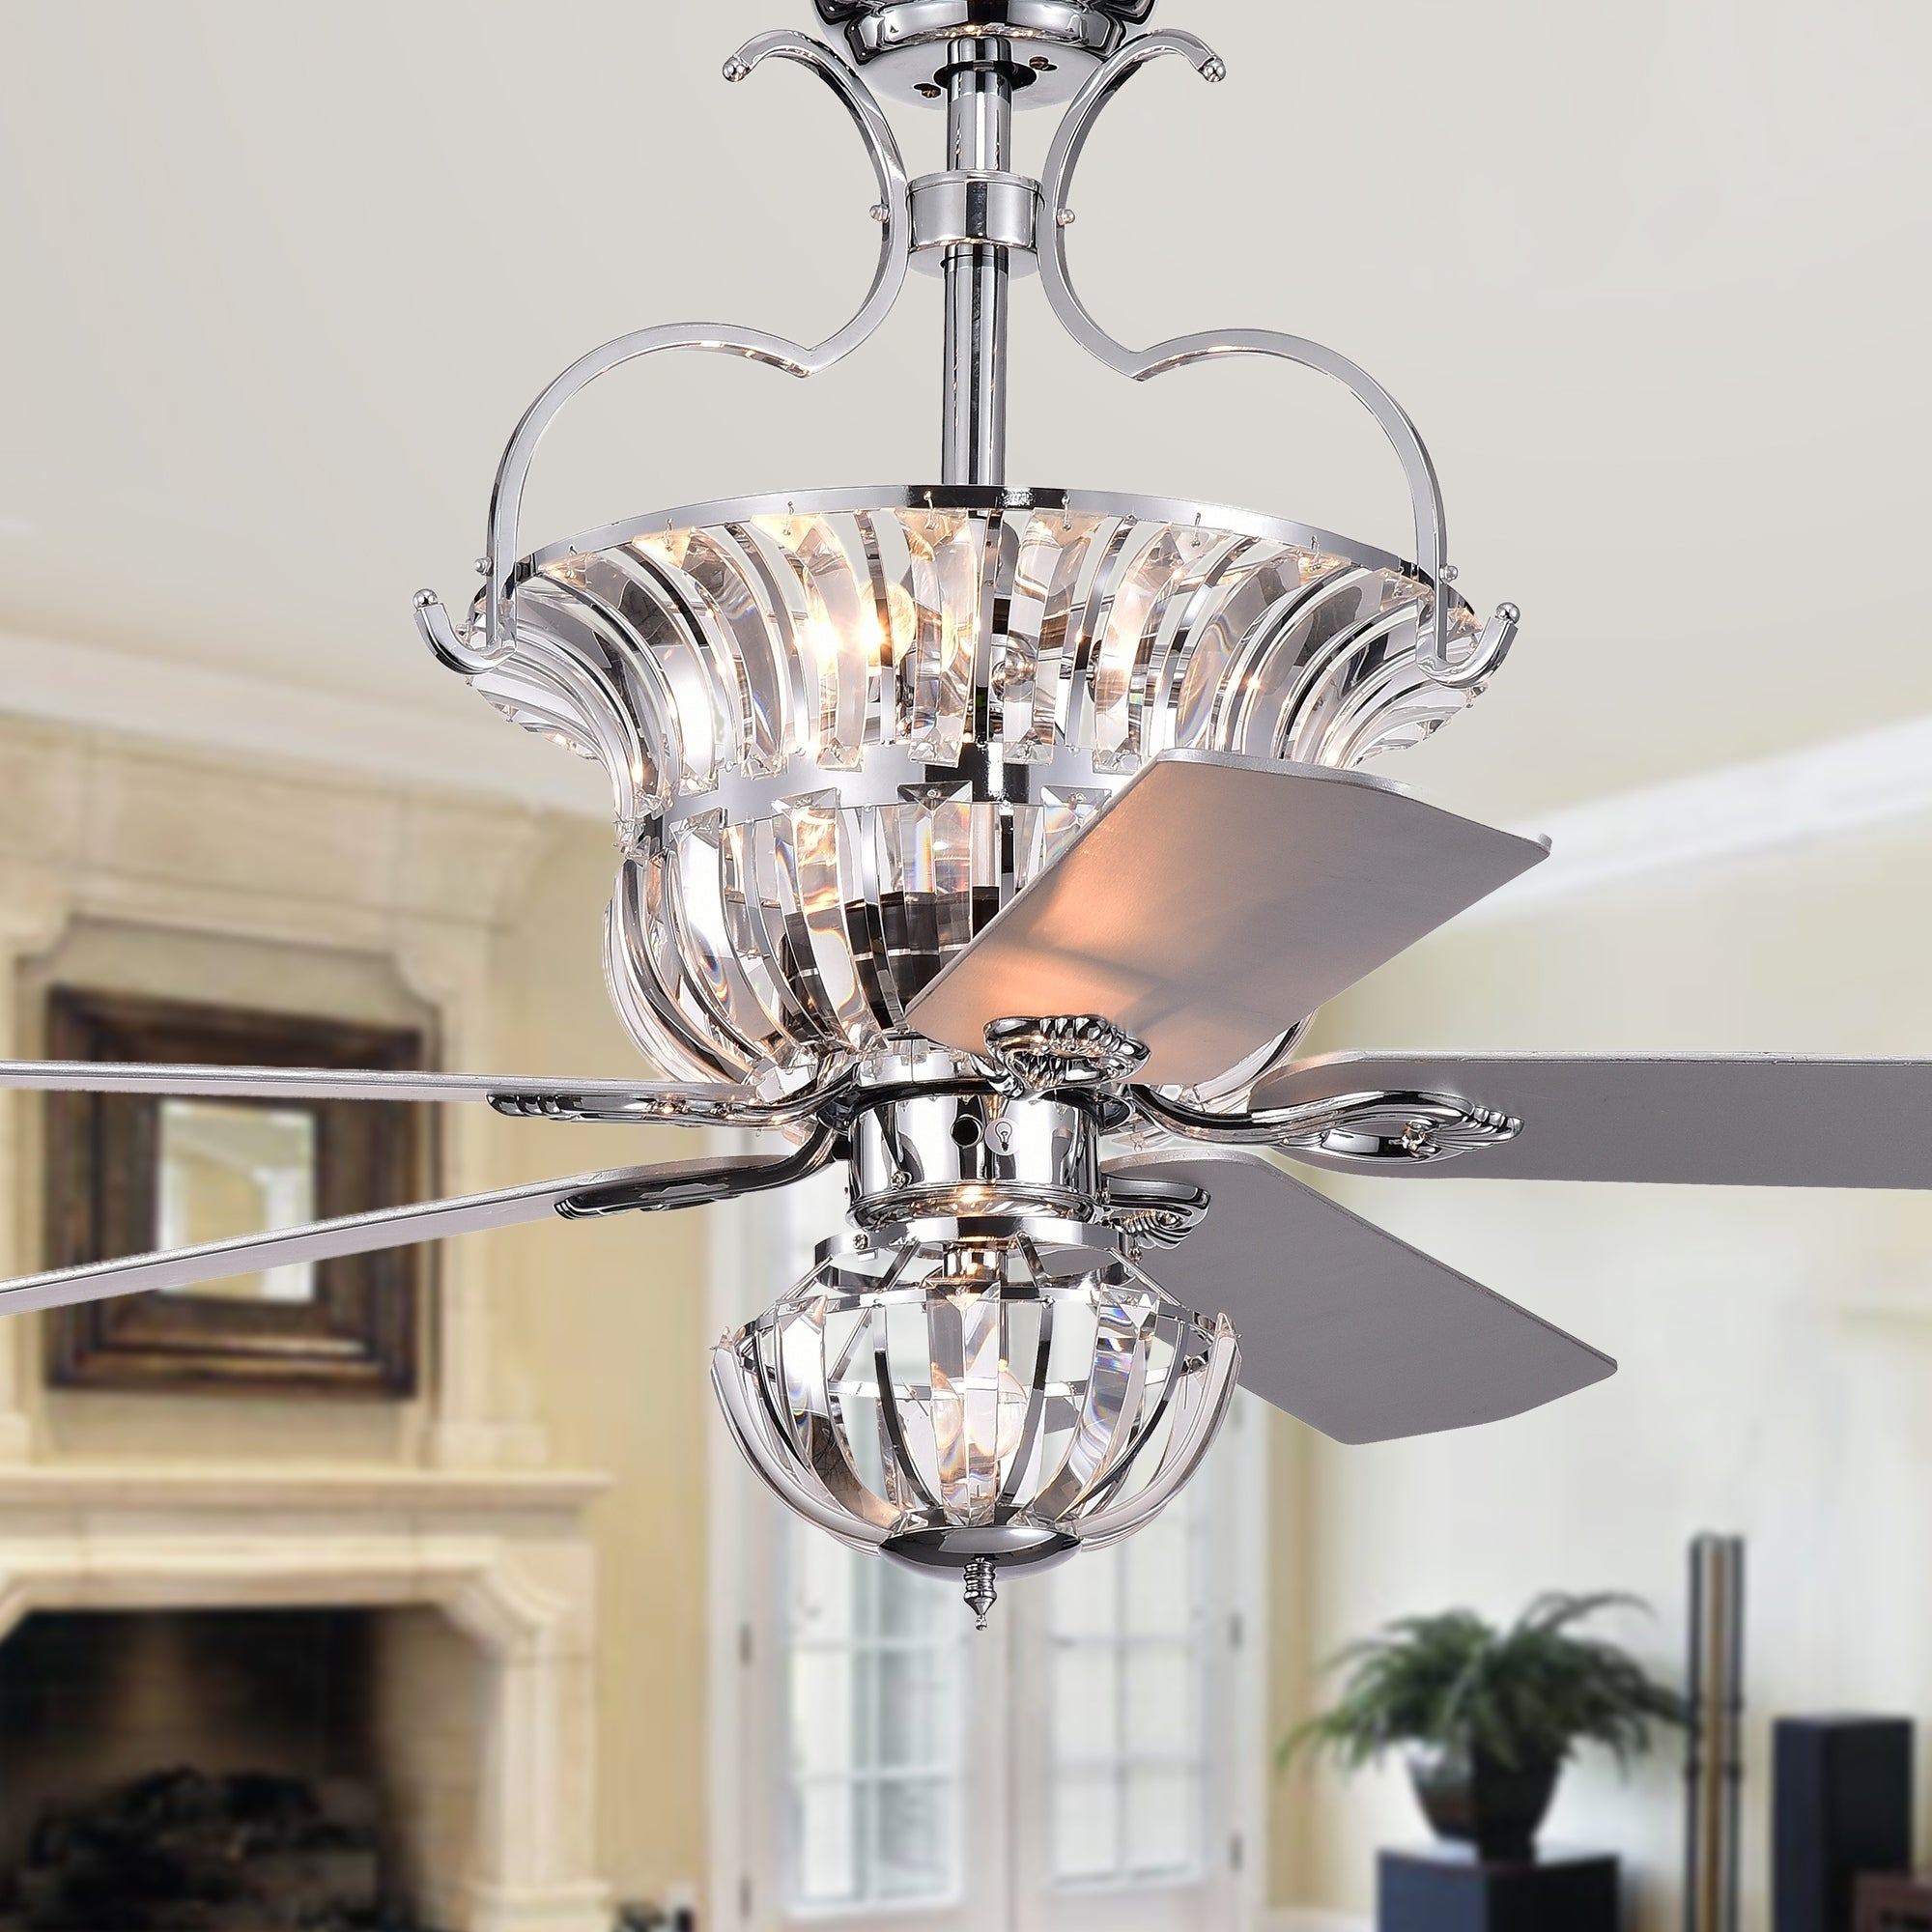 Charla Silver 4 Light Crystal 5 Blade 52 Inch Chandelier Ceiling Fan Remote Controlled